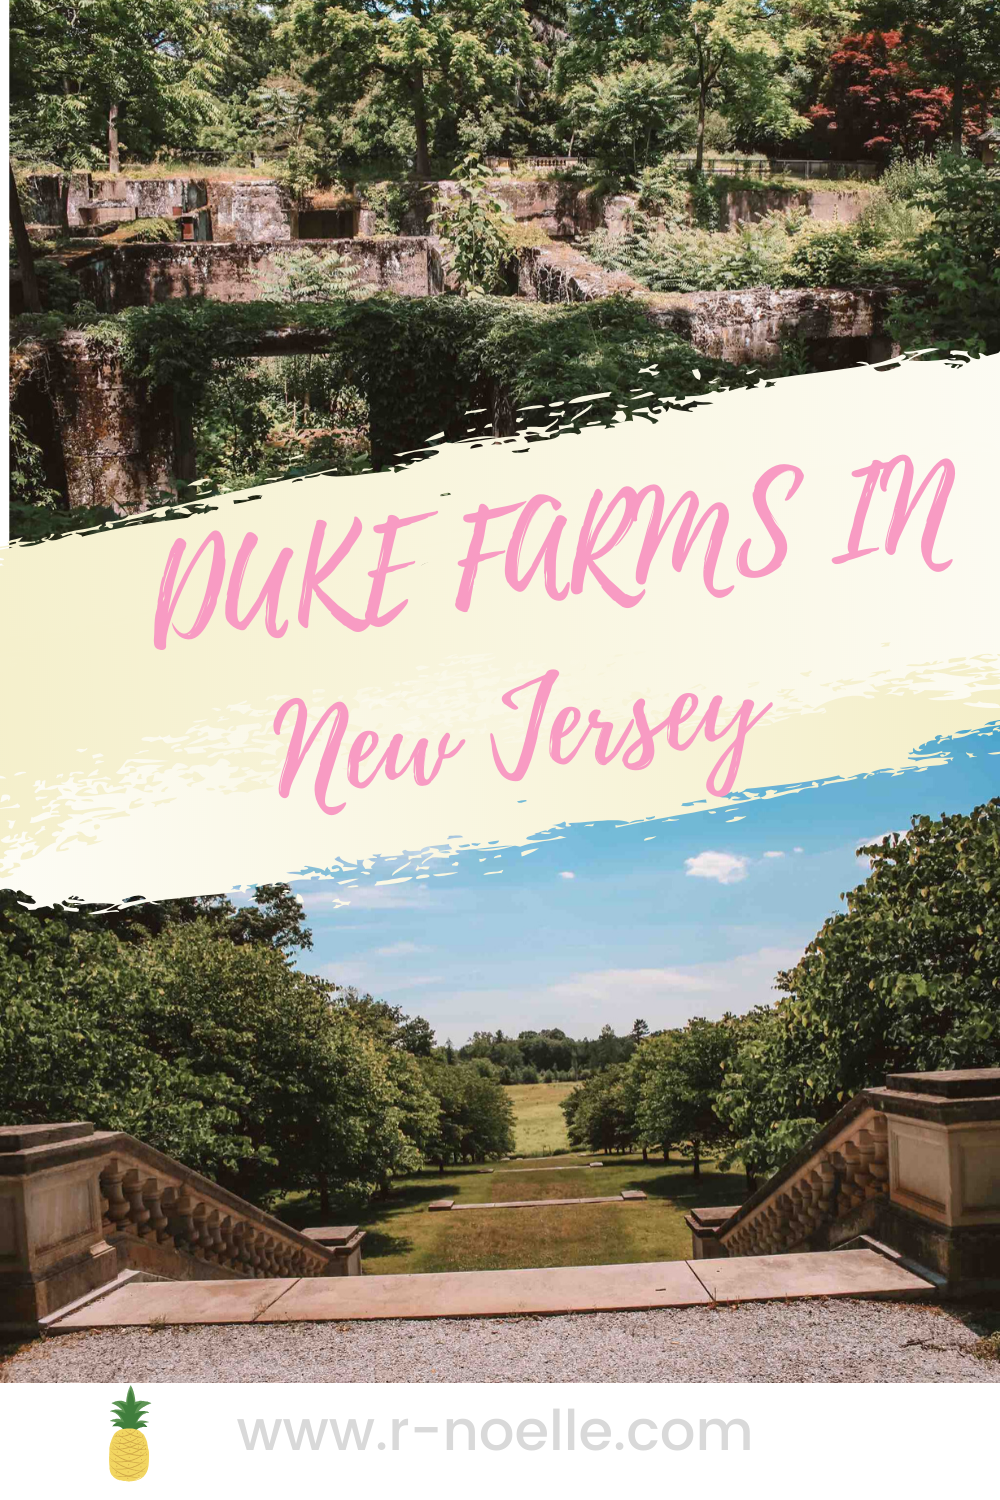 Duke Farm's based in Hillsborough, New Jersey is an amazing gem in Northern New Jersey. If offers amazing grounds to walk or ride a bike. There are wonderful gardens to enjoy. There is also 18 miles works of bike riding!